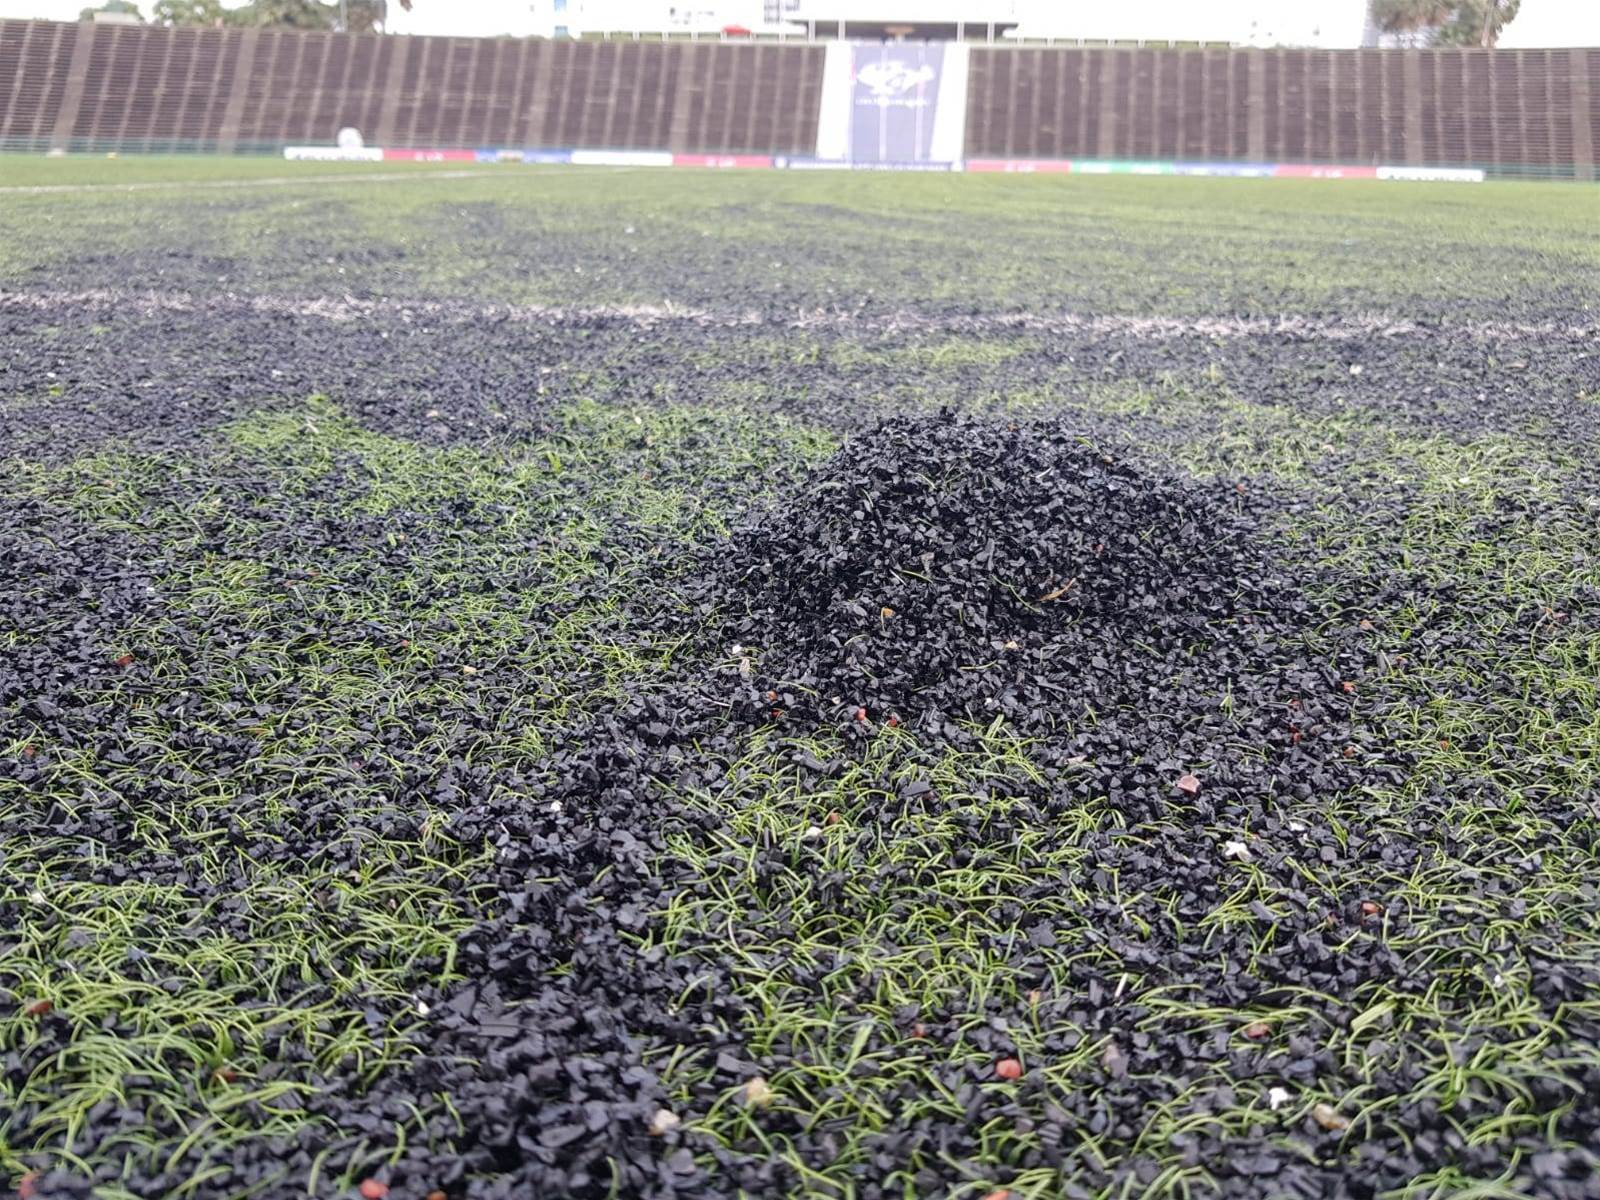 Will this pitch wreck our Olyroos' dreams?